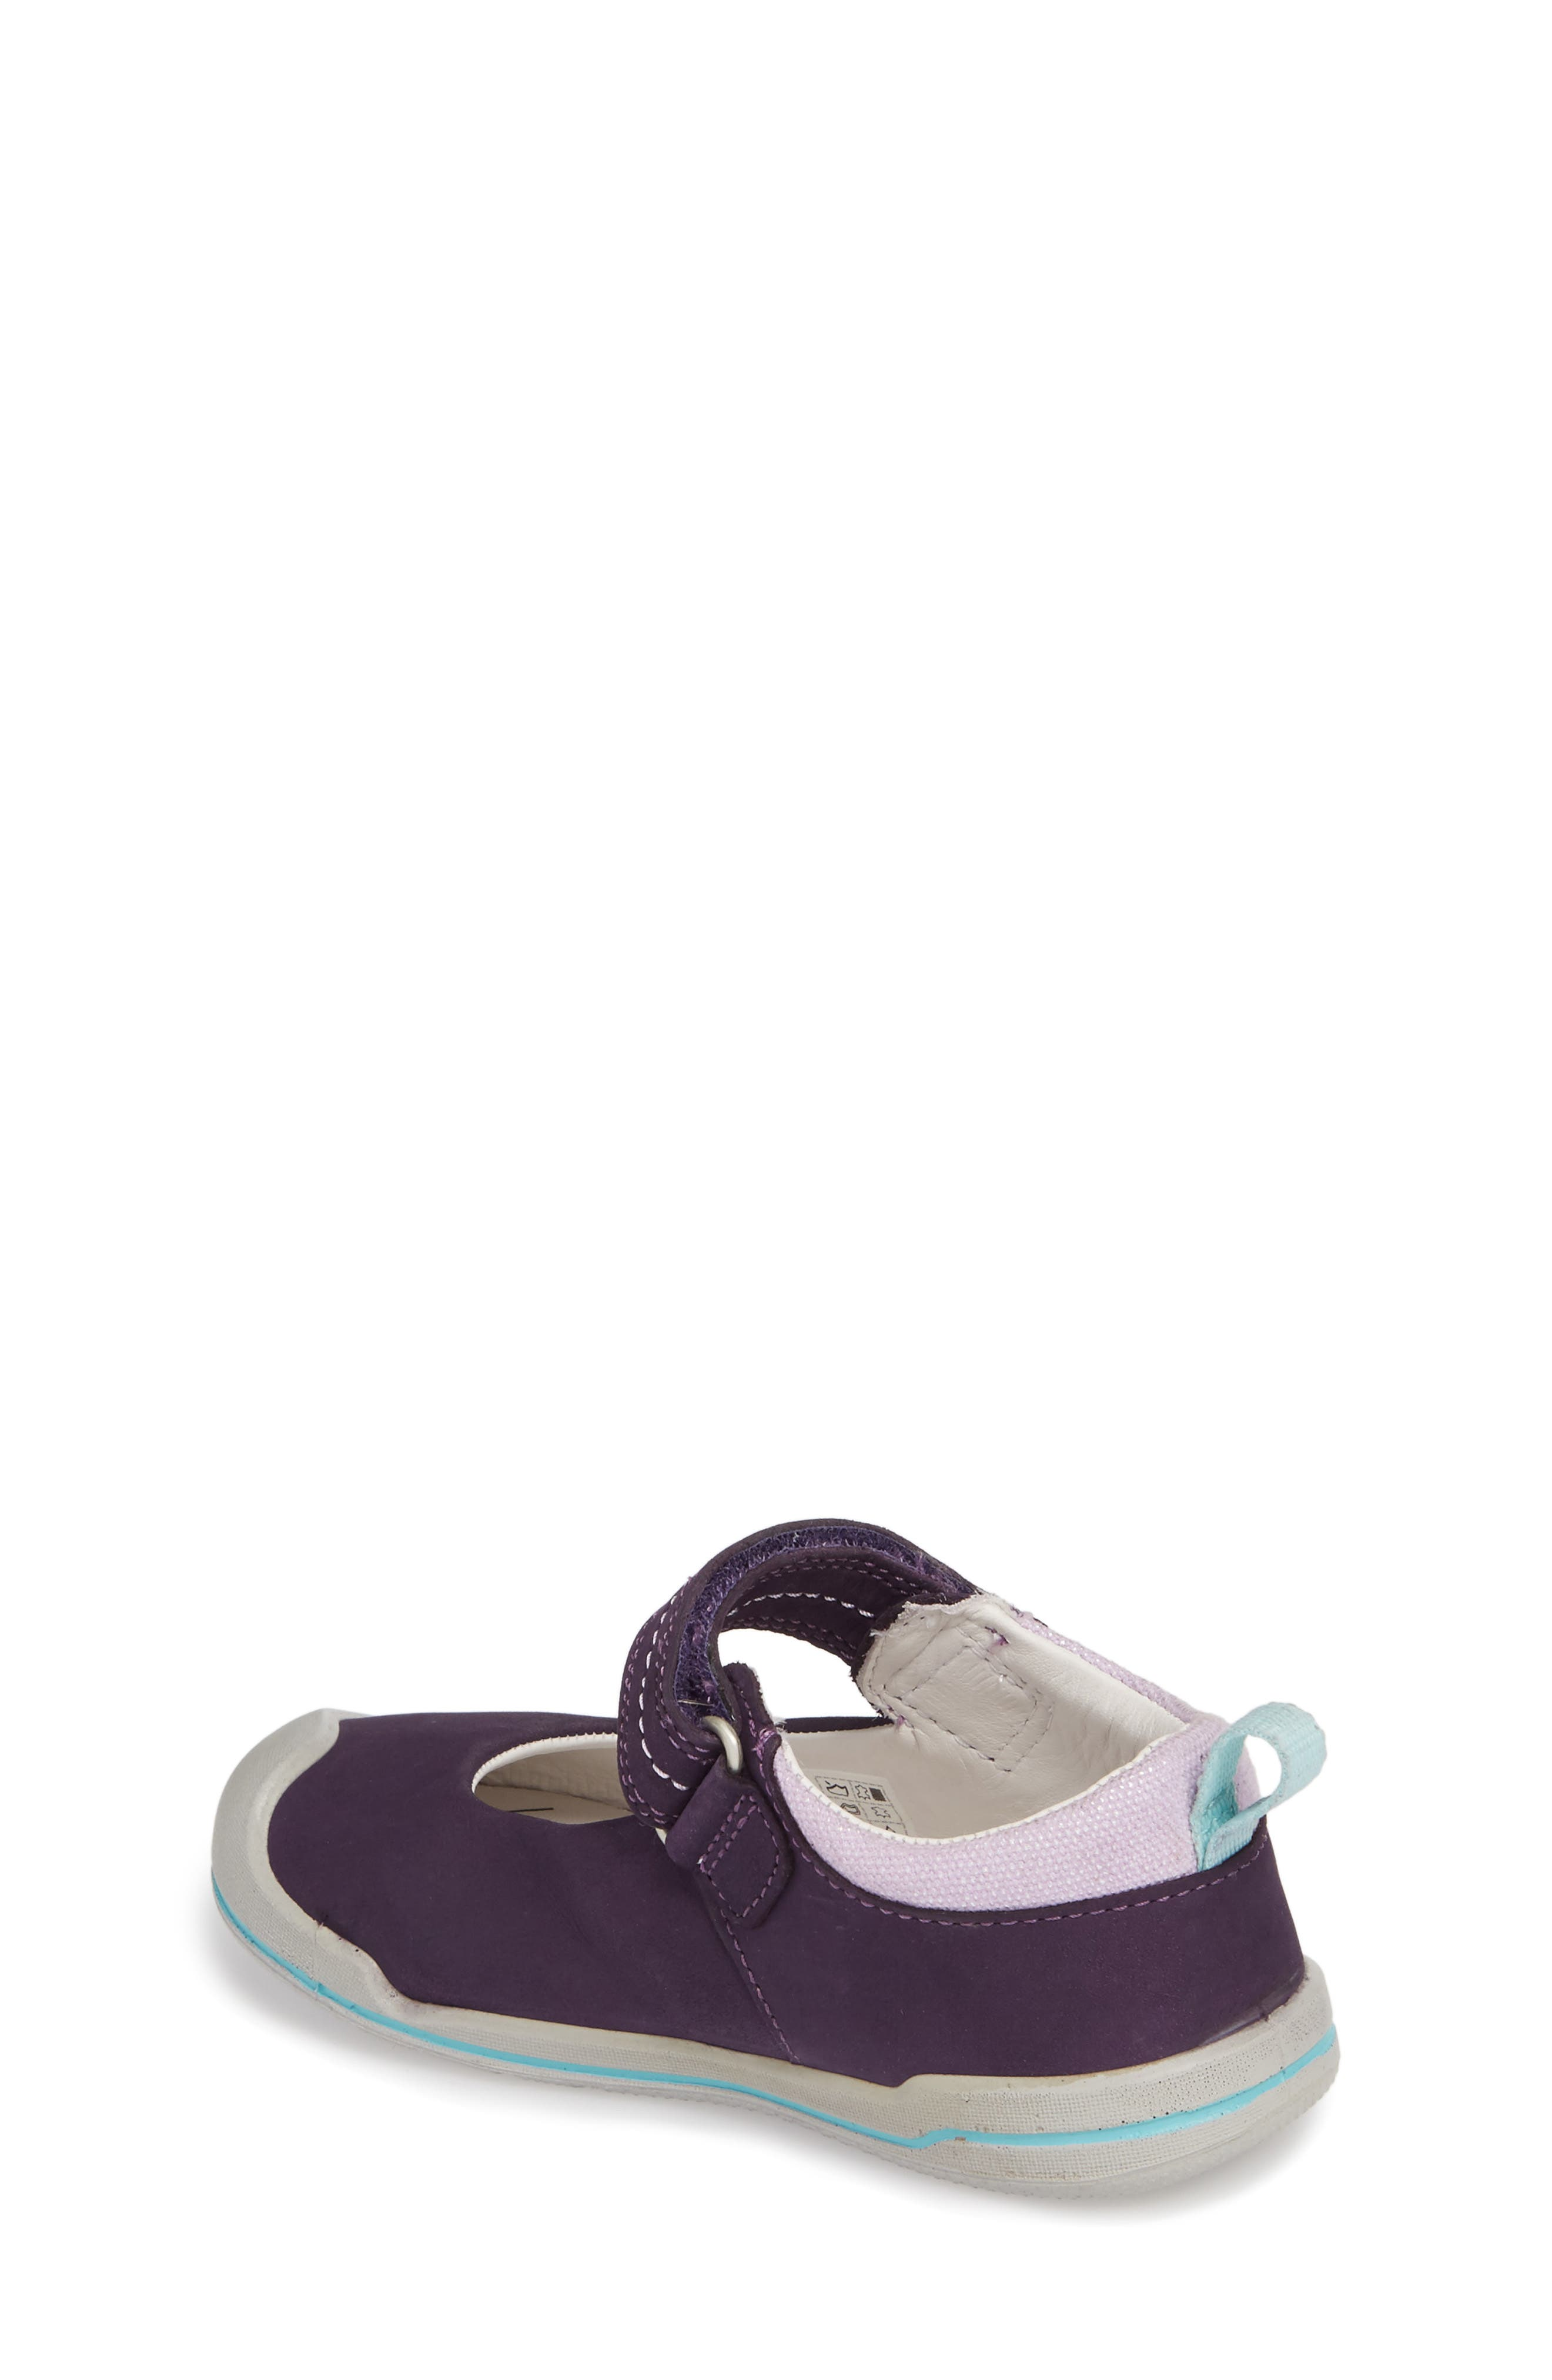 Sprout Mary Jane Sneaker,                             Alternate thumbnail 4, color,